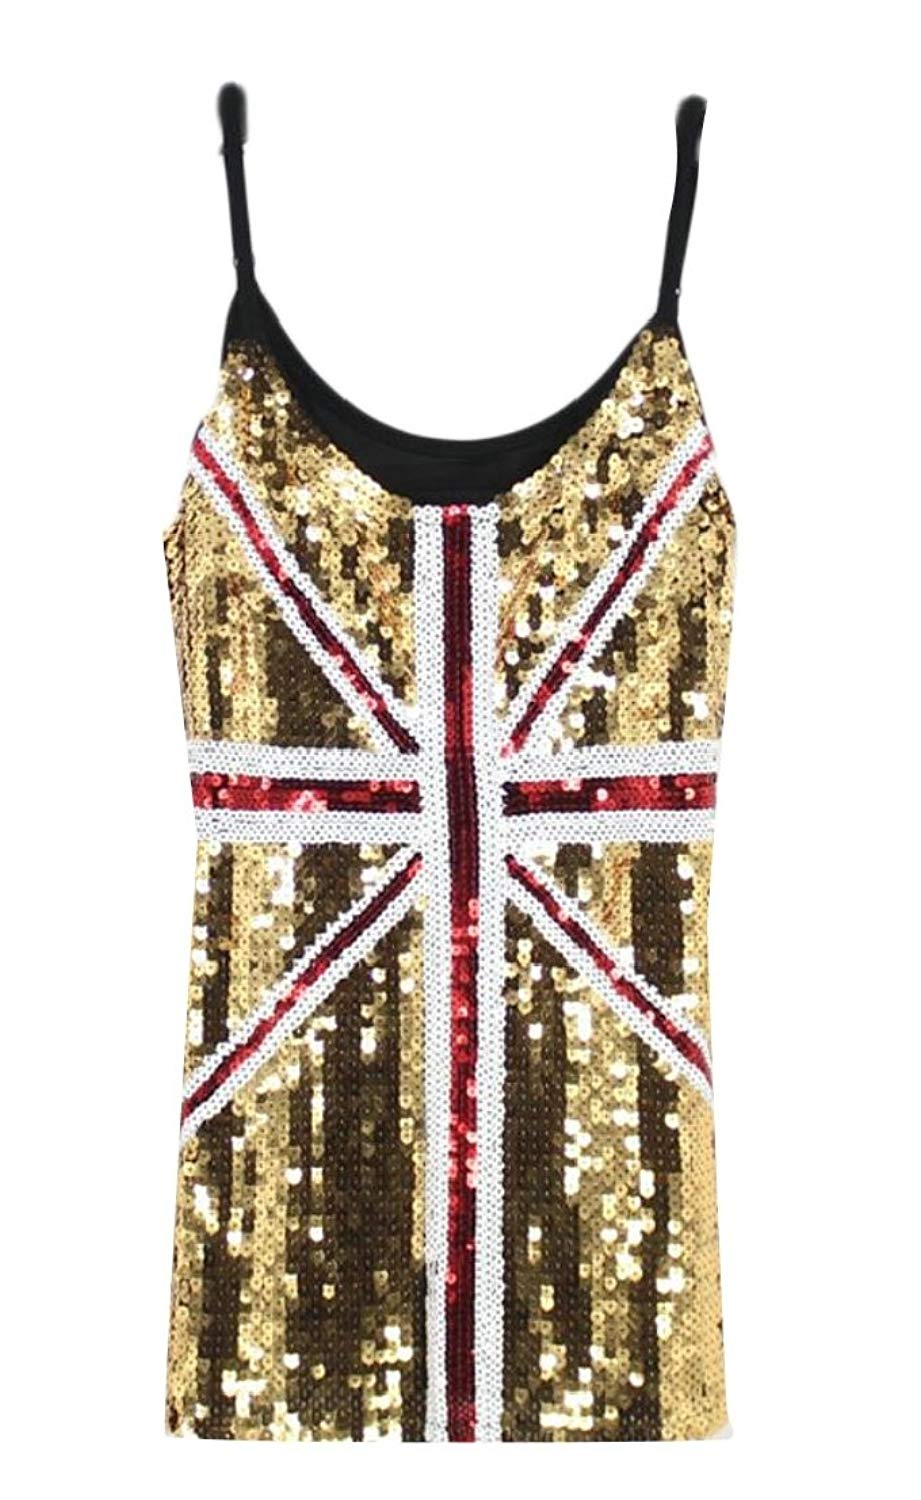 1ee7ac1b320 Get Quotations · Generic Womens Sequin United Kingdom Flag Tank Tops  Spaghetti Strap Camis Tops